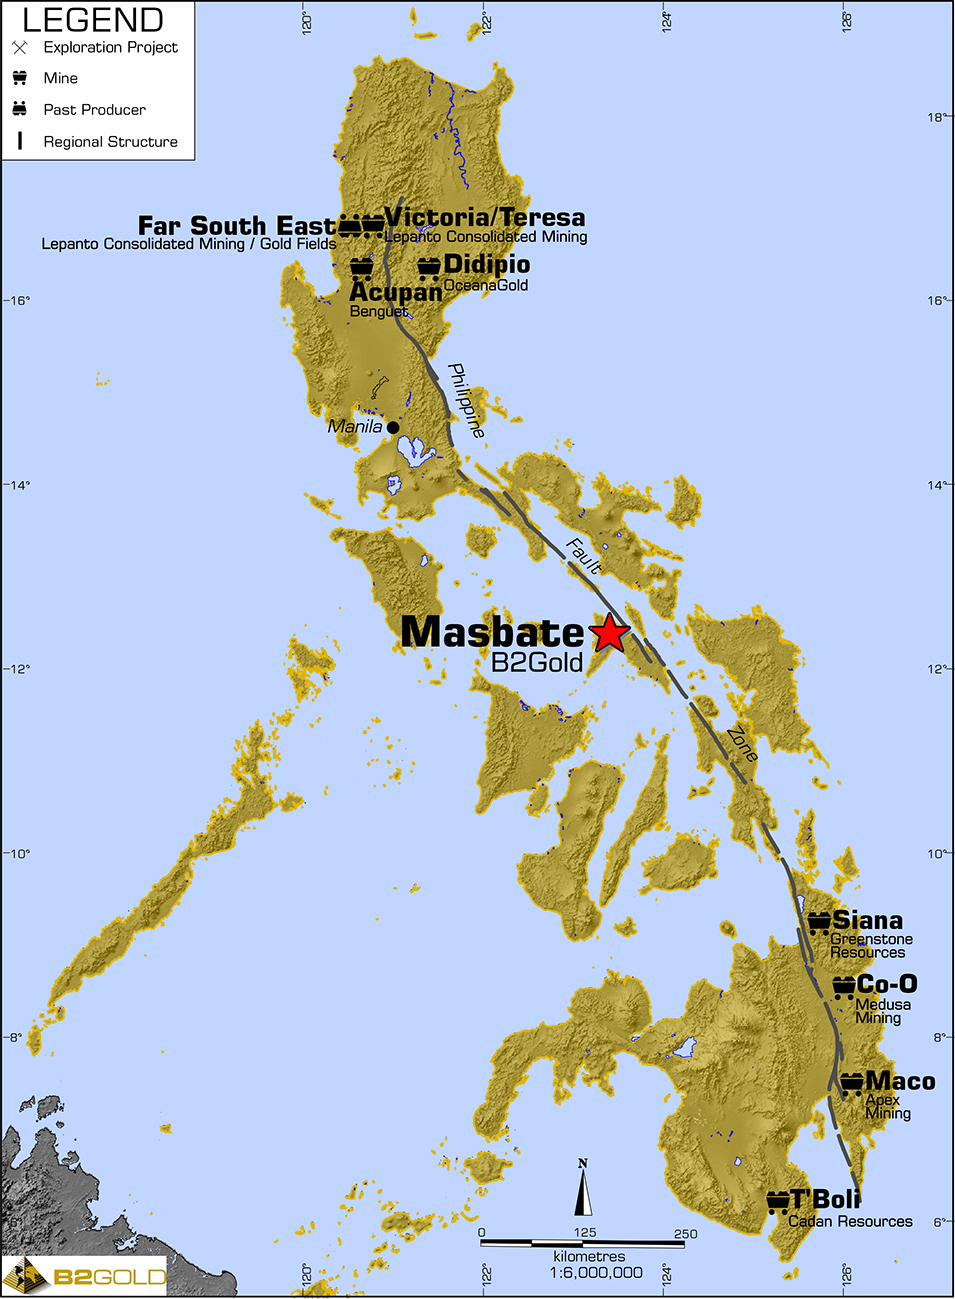 Gold Mines In World Map.B2gold The World S New Senior Gold Producer Masbate Mine The